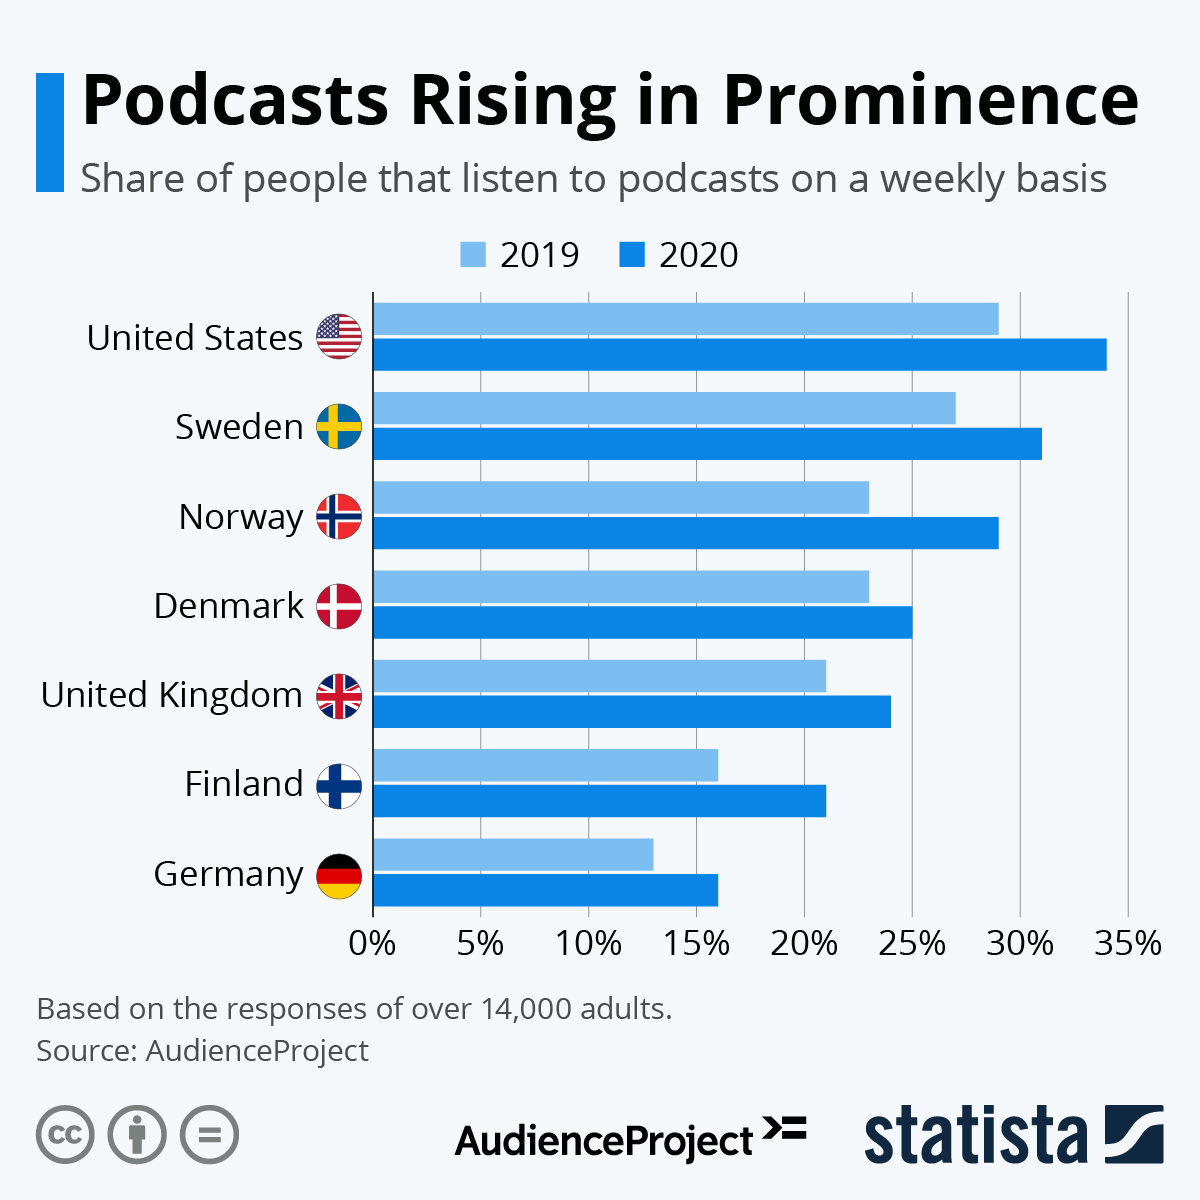 Image contains a graph showing the increasing prominence of podcasts between 2019 and 2020 in different countries